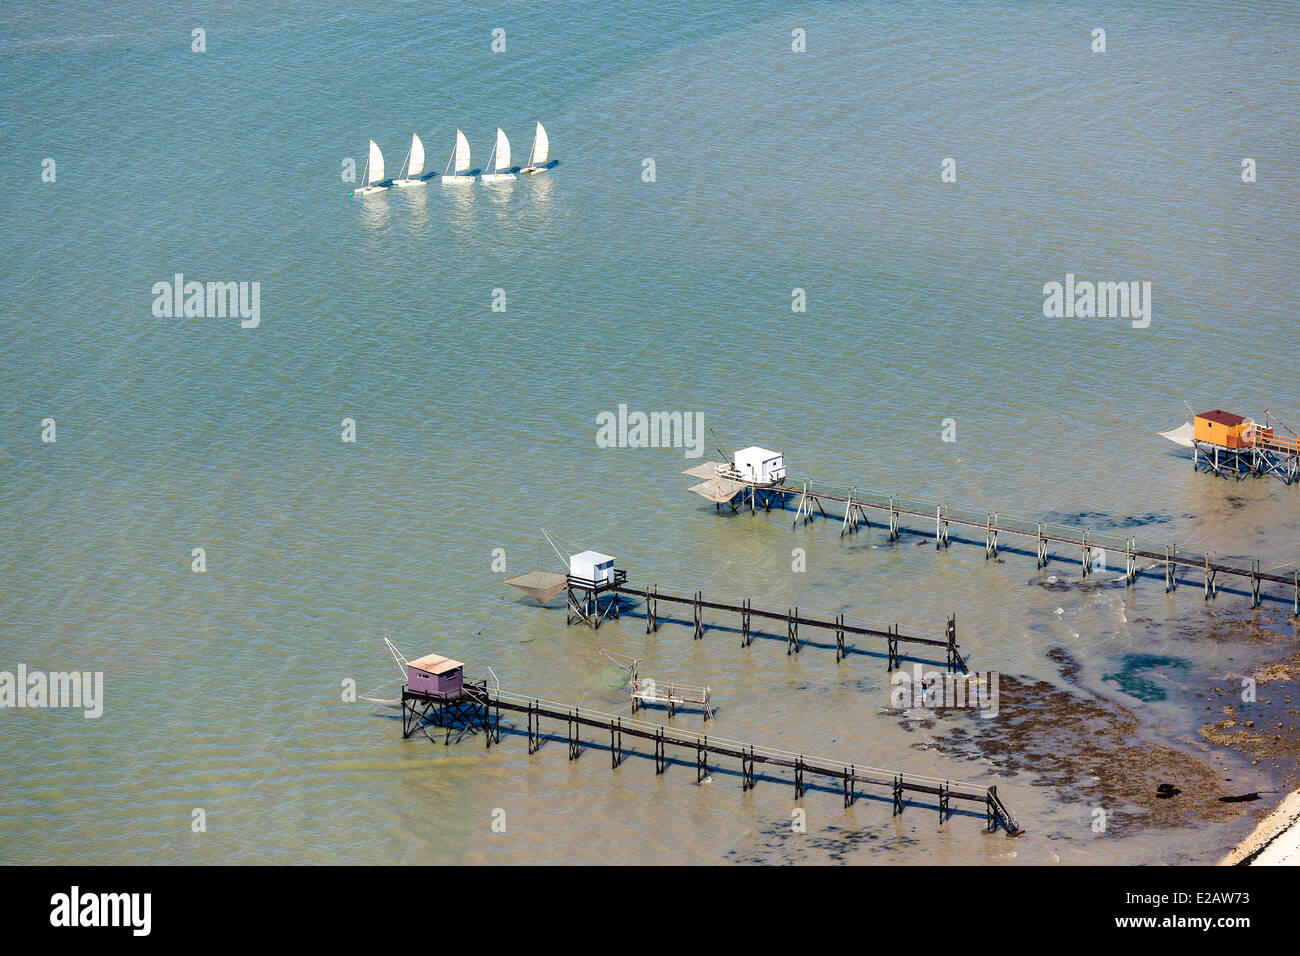 France, Charente Maritime, Fouras, fisheries and sailboats (aerial view) - Stock Image